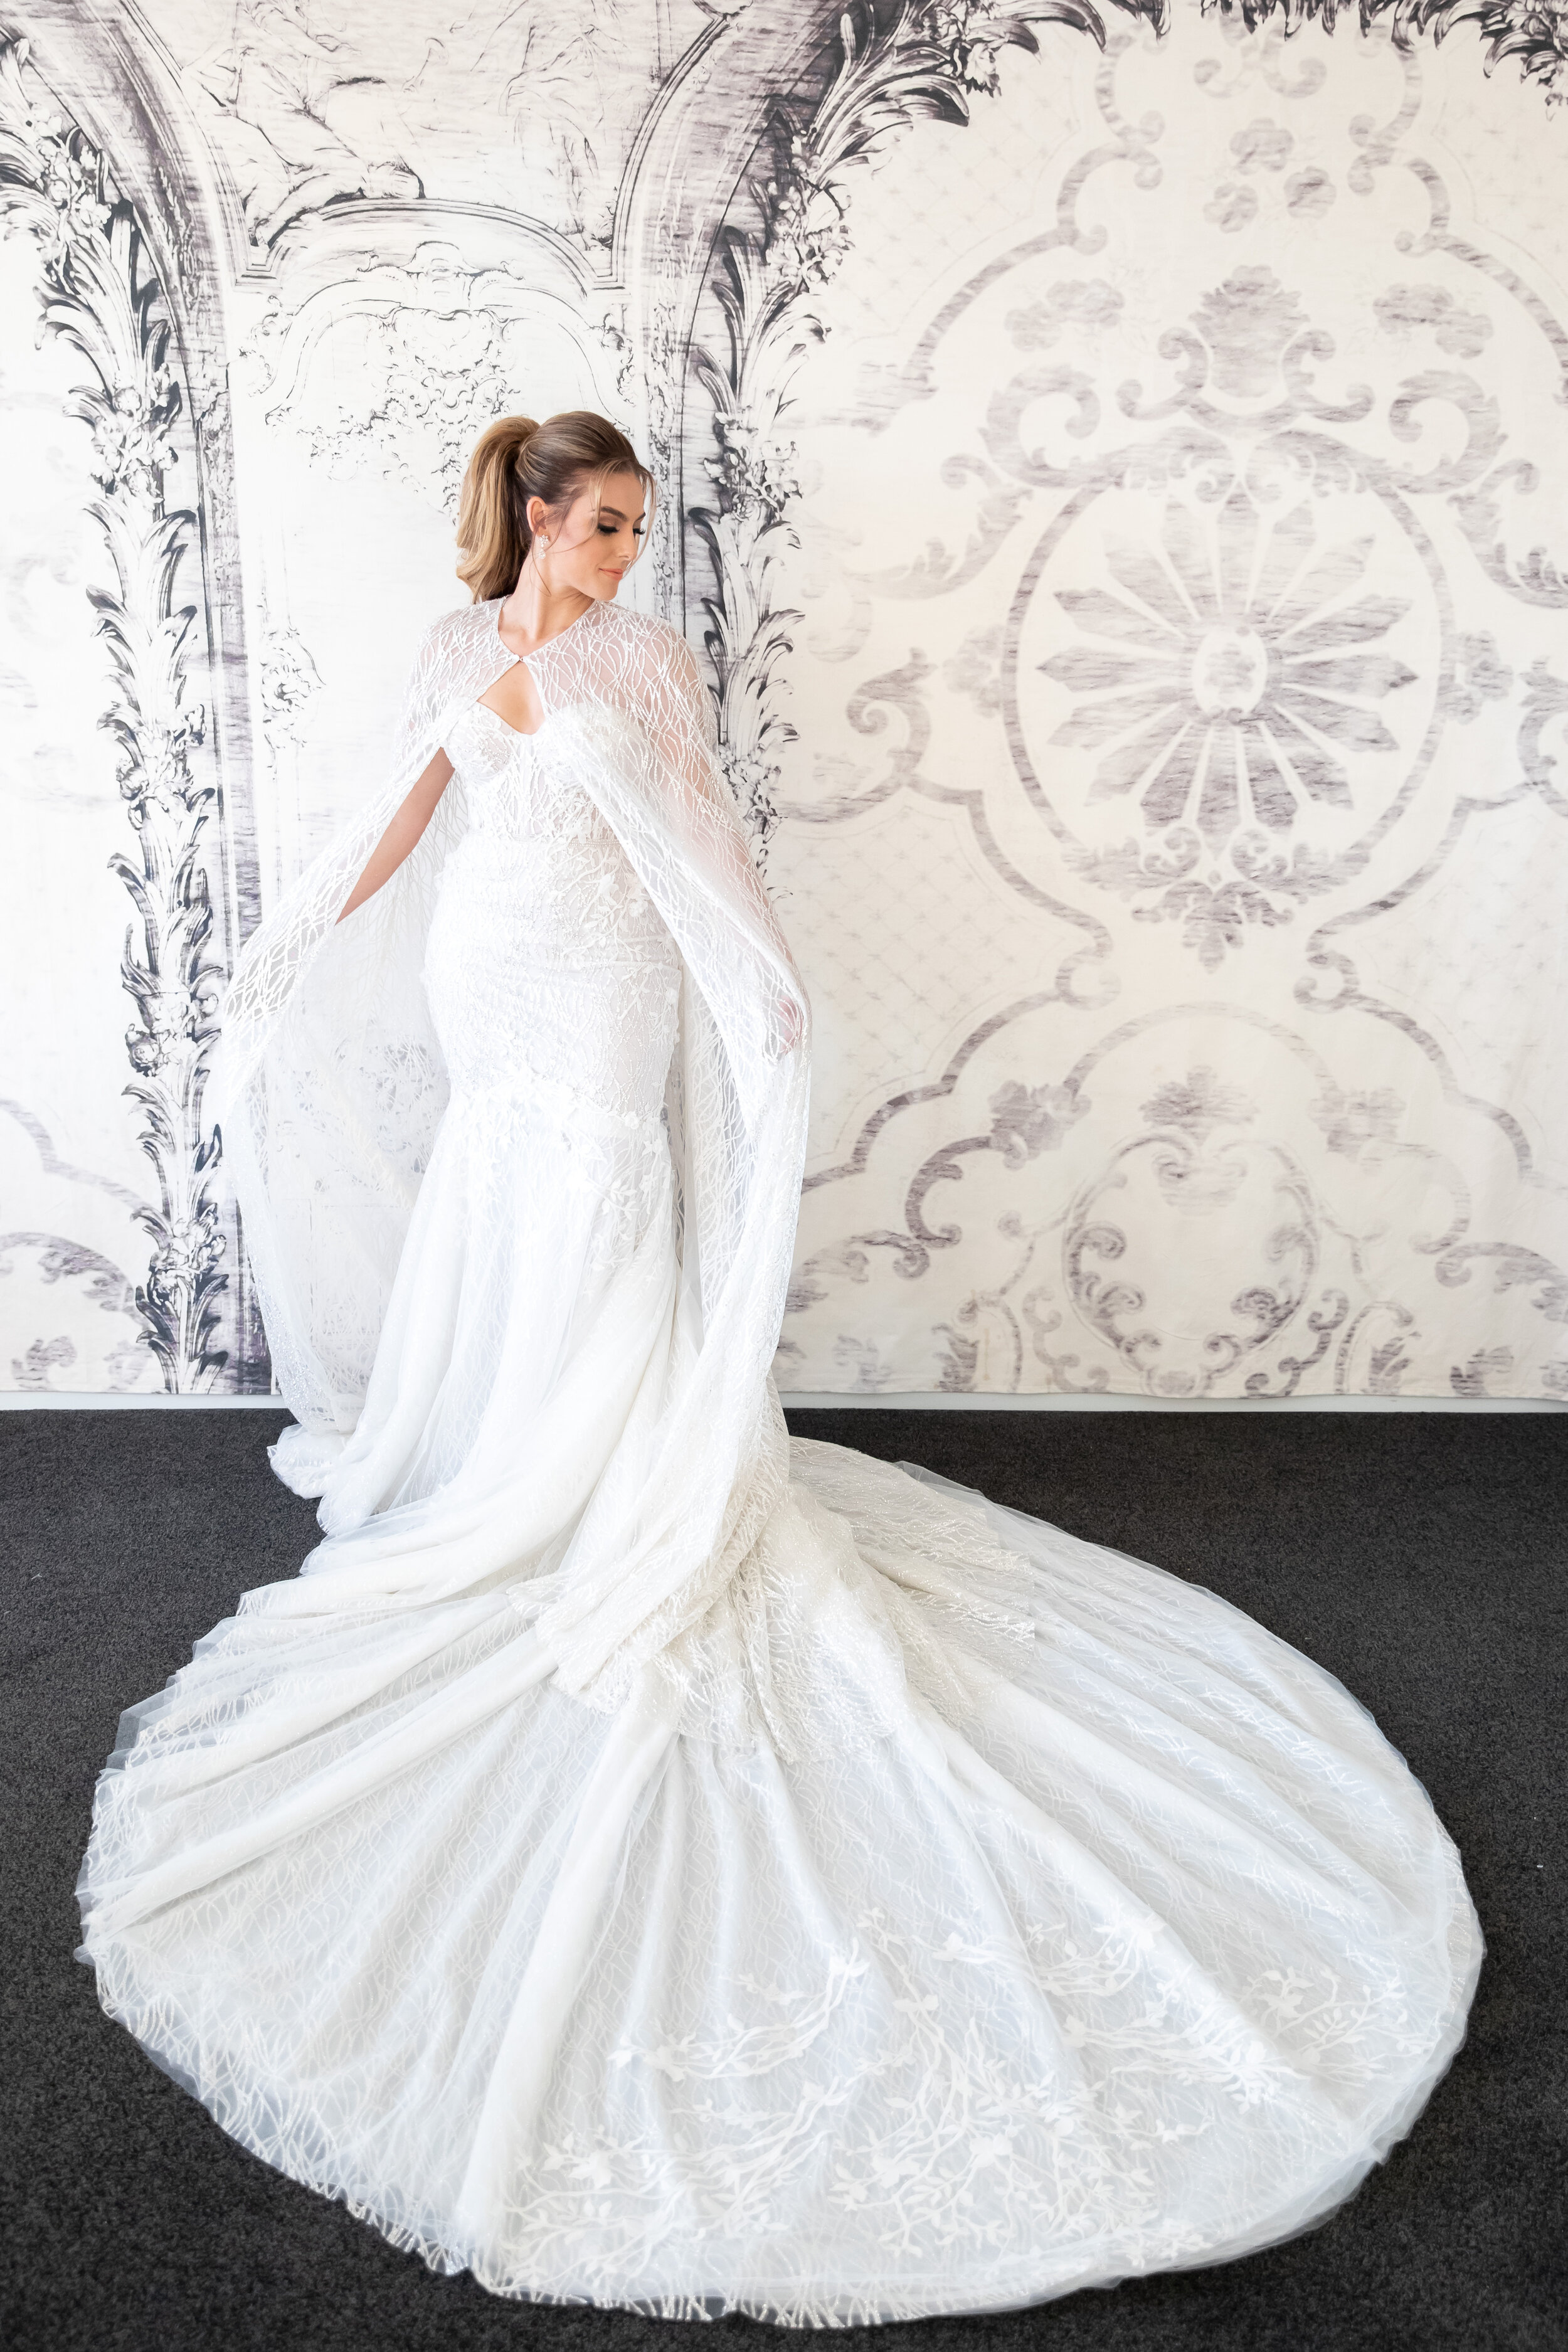 Las Vegas Wedding Planner:  Why you should plan a bridal shoot.  Brian Leahy Photography